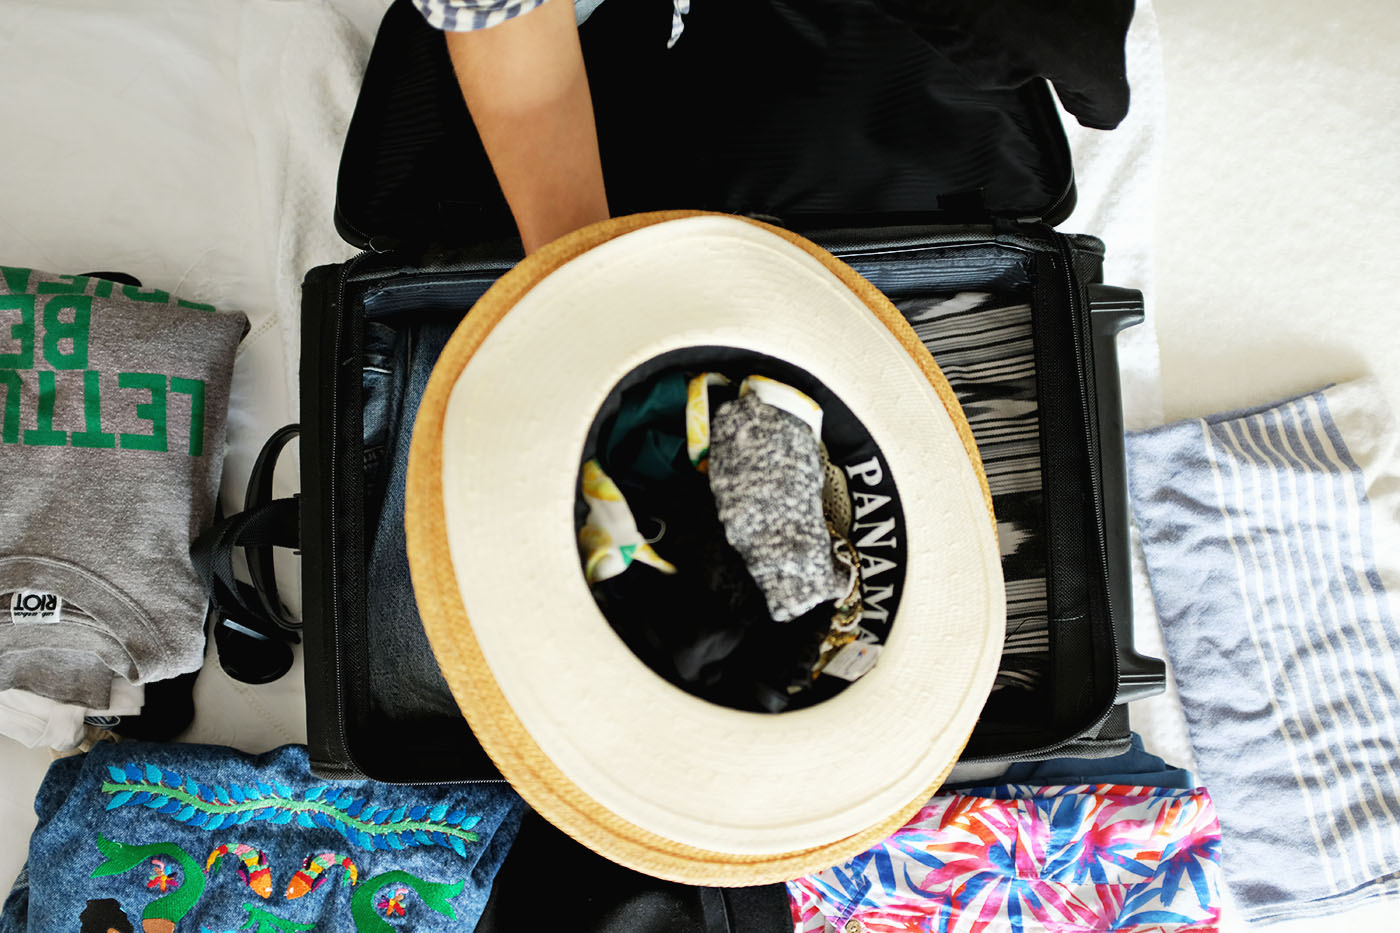 ohdeardrea-travel-blog-how-to-pack-a-hat-stuff-1.jpg